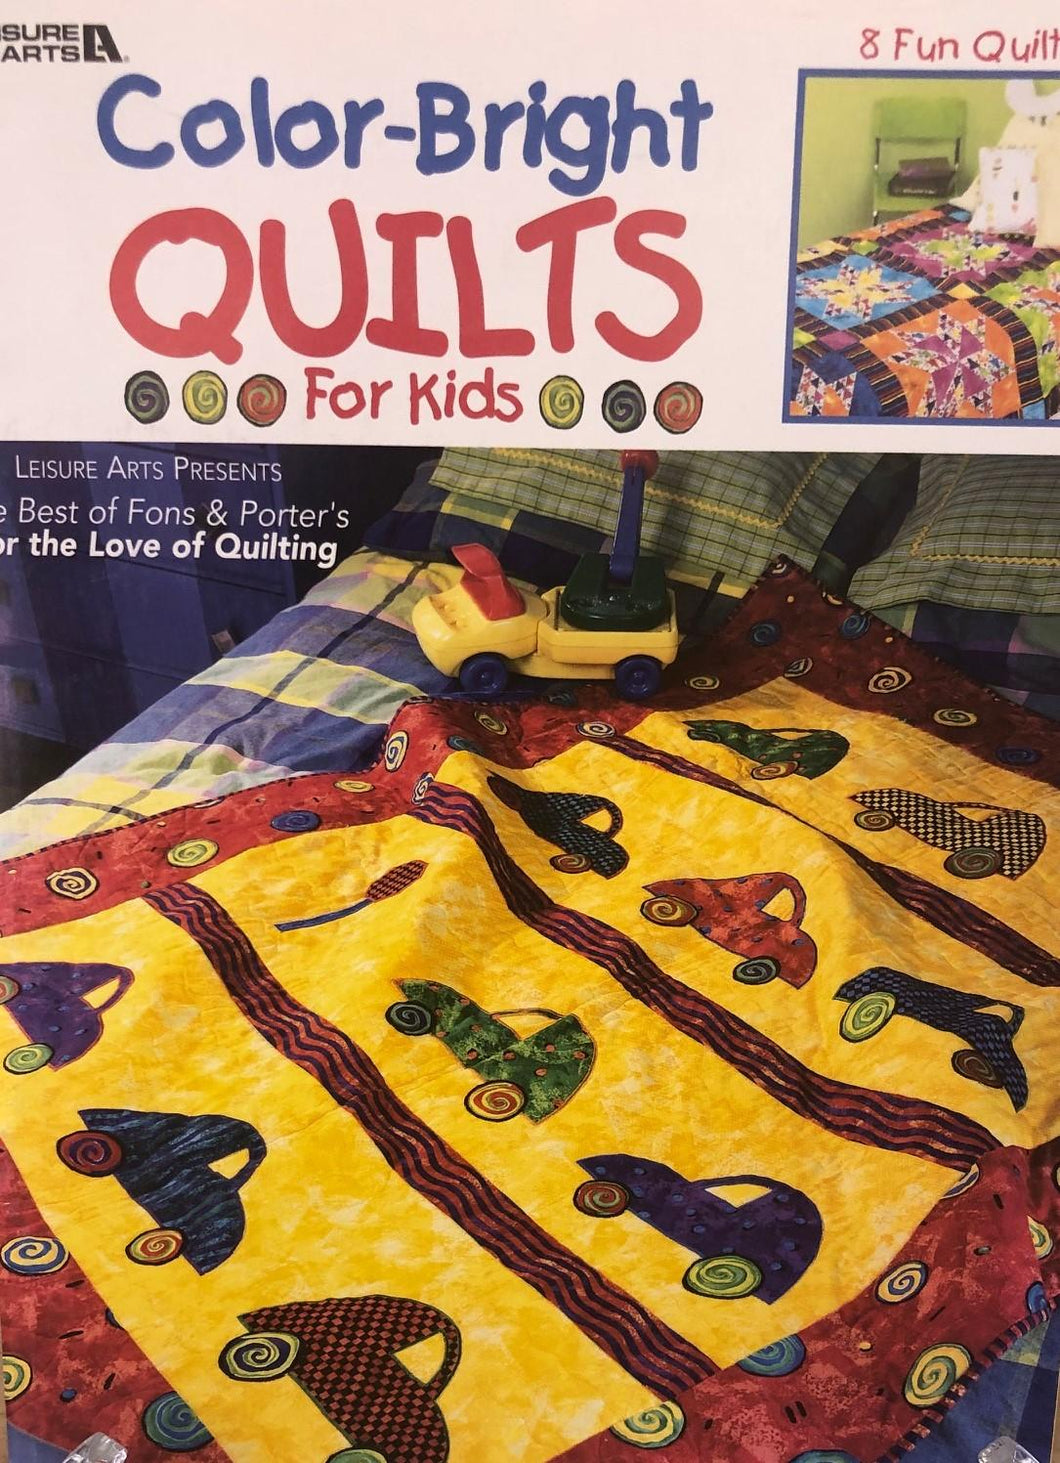 Color-Bright Quilts for Kids